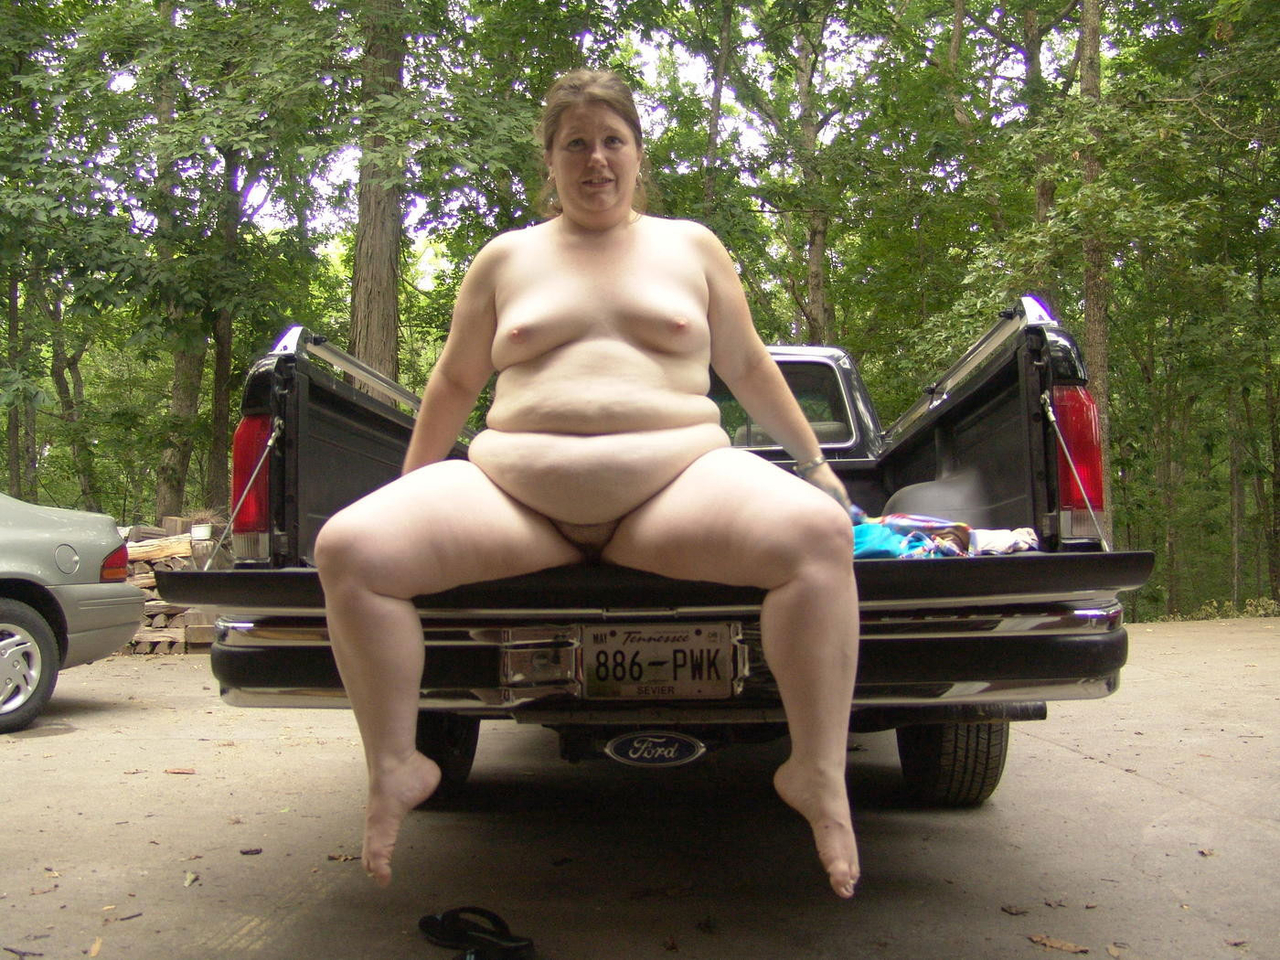 Topic think, amateur bbw public flashing you inquisitive